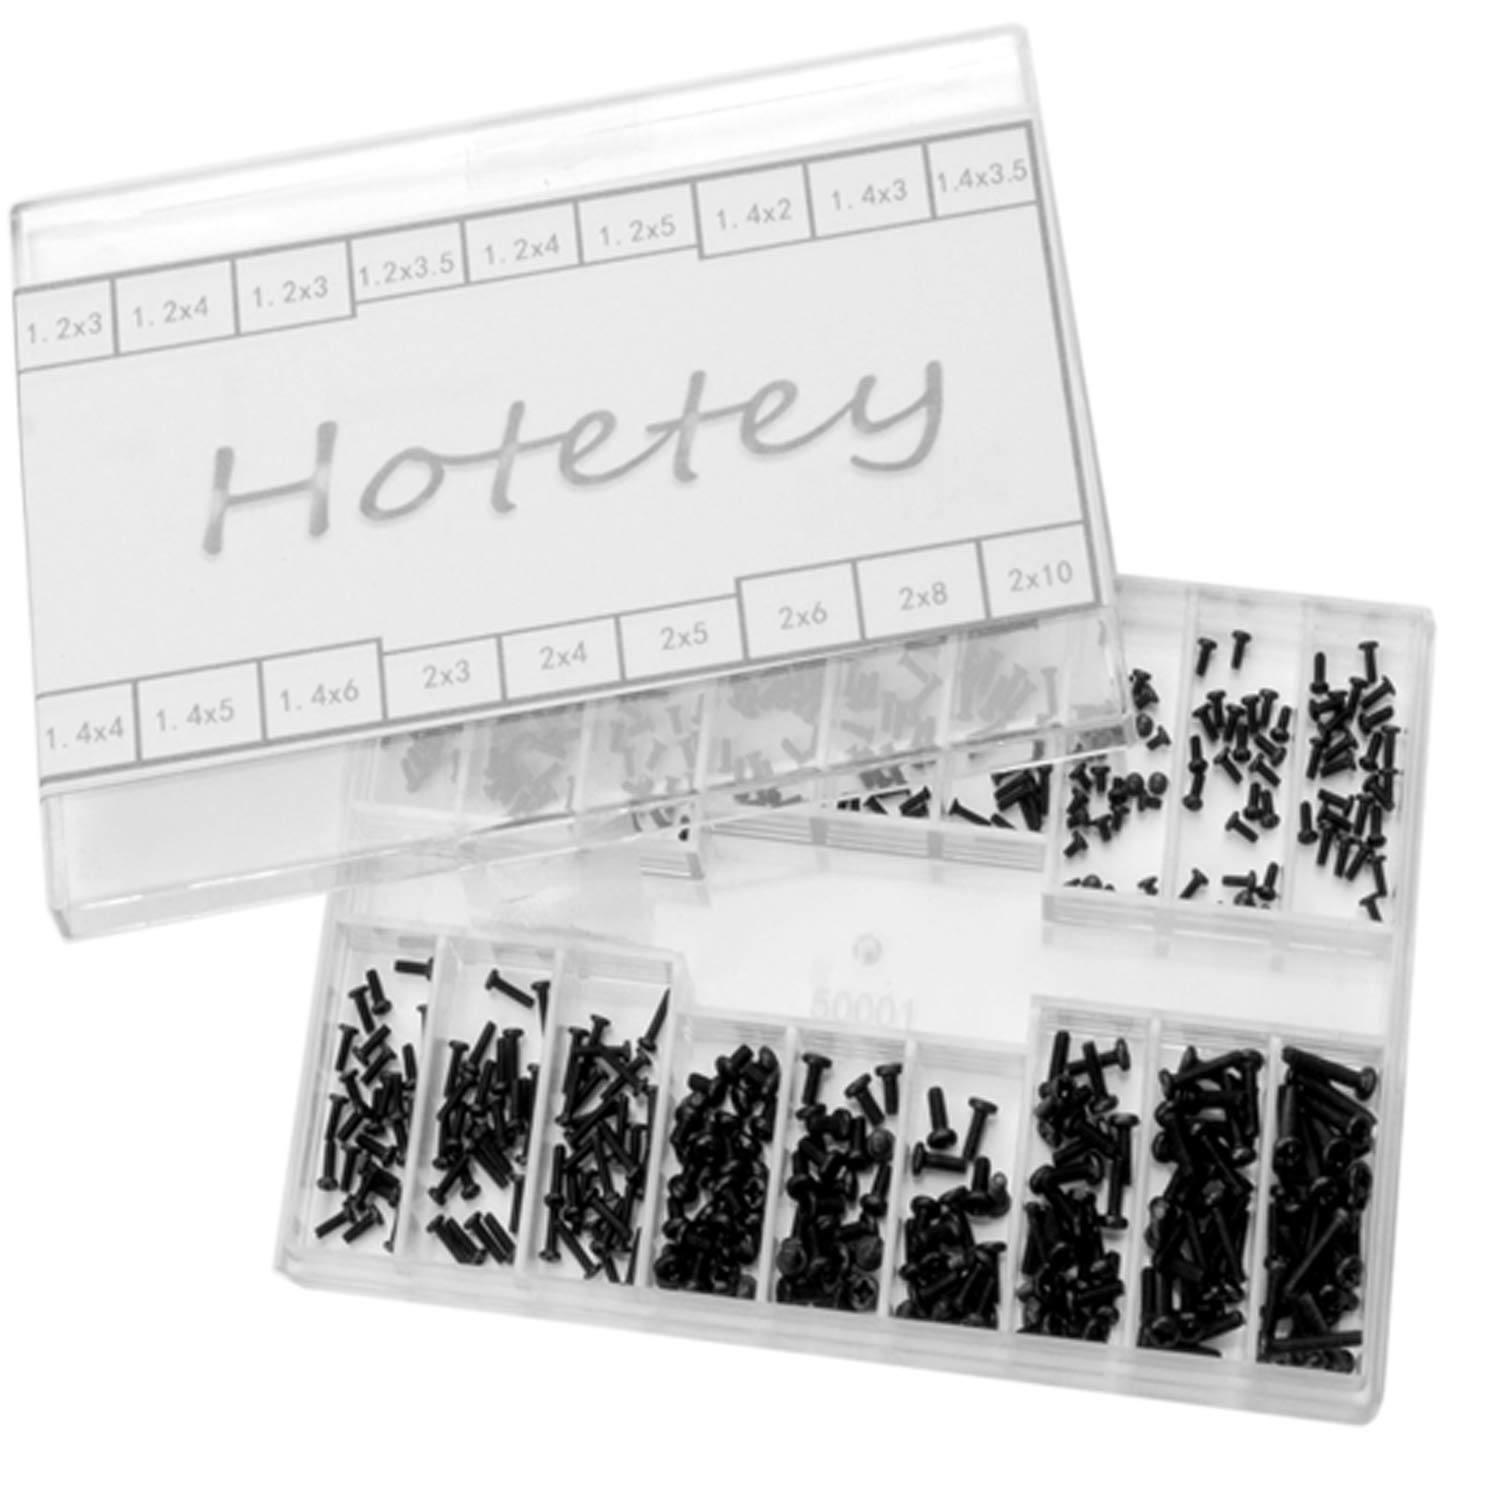 Small Screws Assortment Kit Hotetey 18 Kinds M1.2 / M1.4 / M2.0 Tiny Micro Screws Set for Glasses Watches (Black)